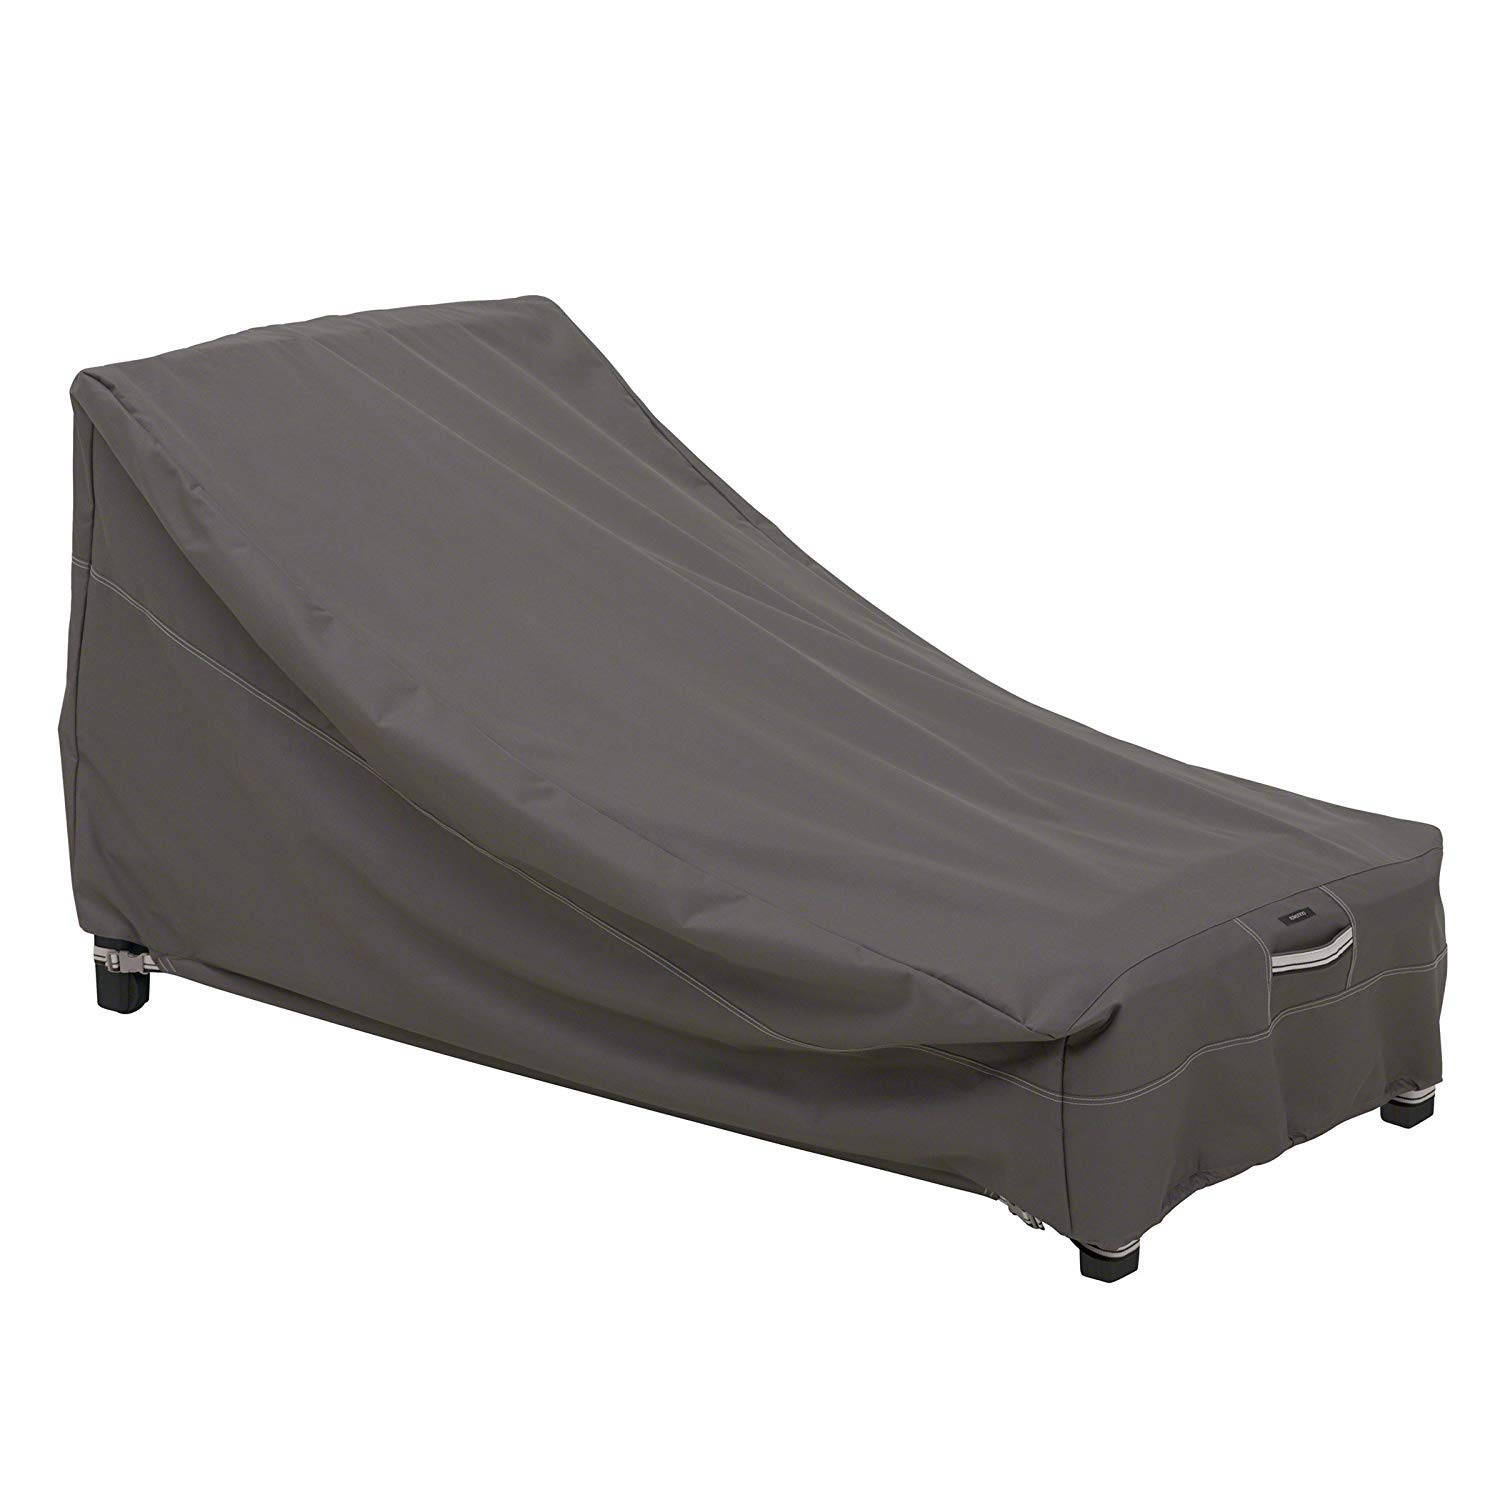 Classic Accessories 55-163-045101-EC Ravenna Day Chaise Cover